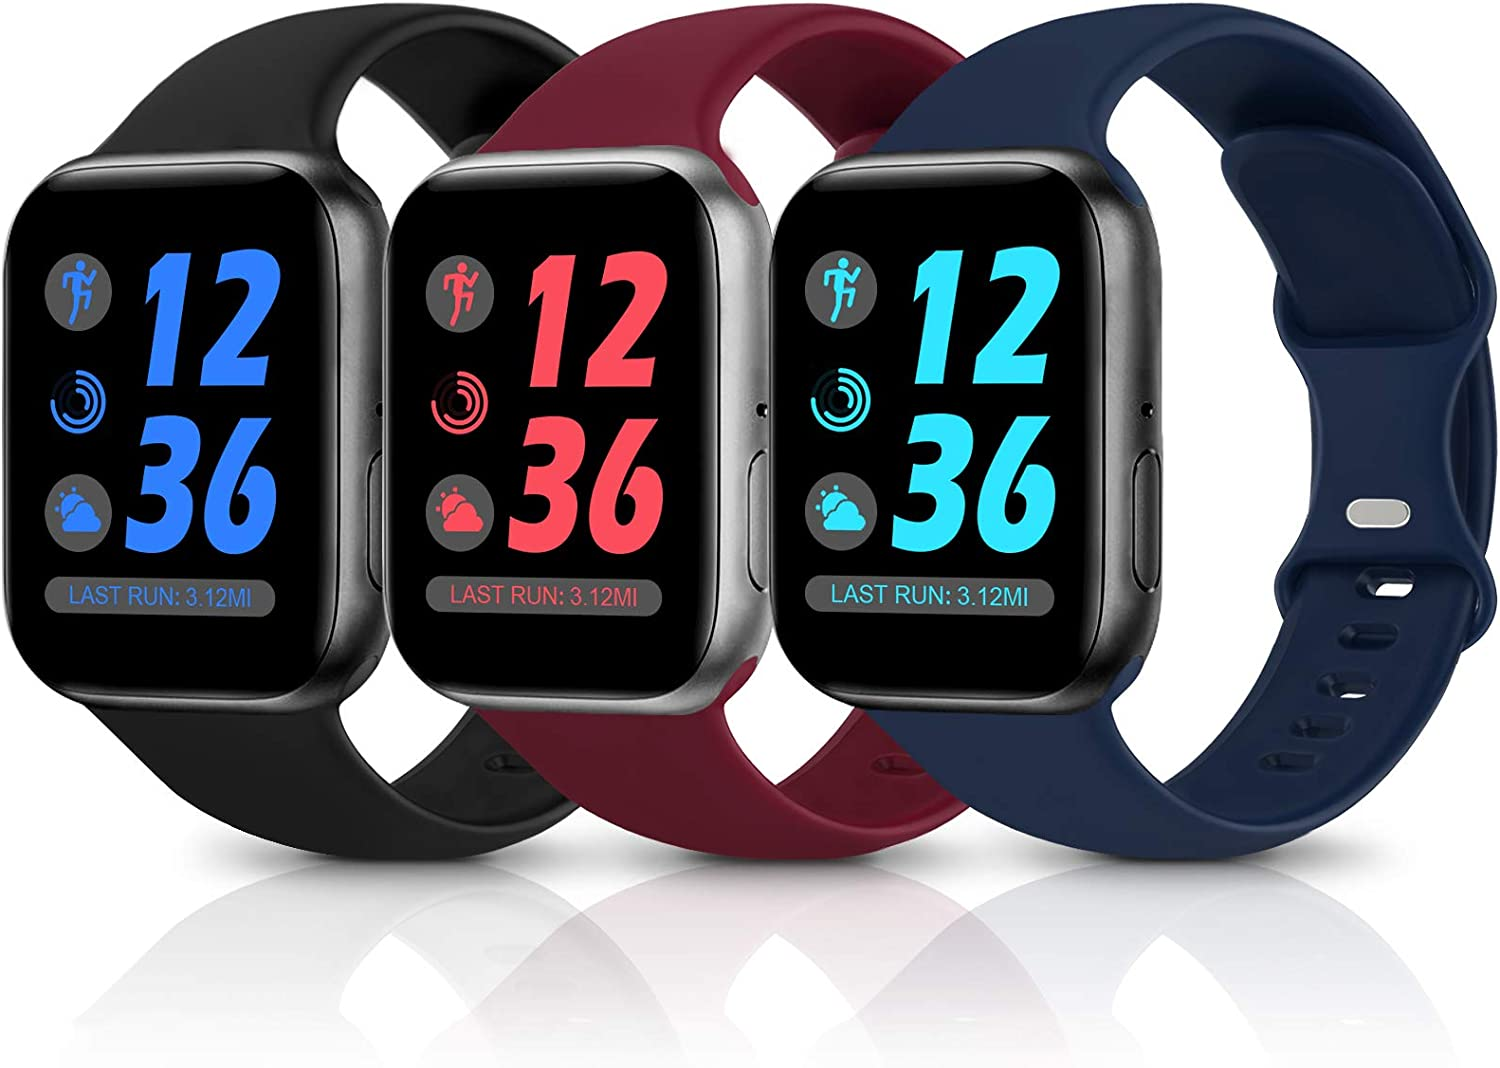 Sport Silicone Band Compatible with Apple Watch Bands 38mm 40mm 42mm 44mm,Soft Replacement Wristbands for iWatch Series 1/2/3/4/5/6/SE,Women Men,3 Pack(Black/Navy Blue/Wine Red,42mm/44mm-S/M)